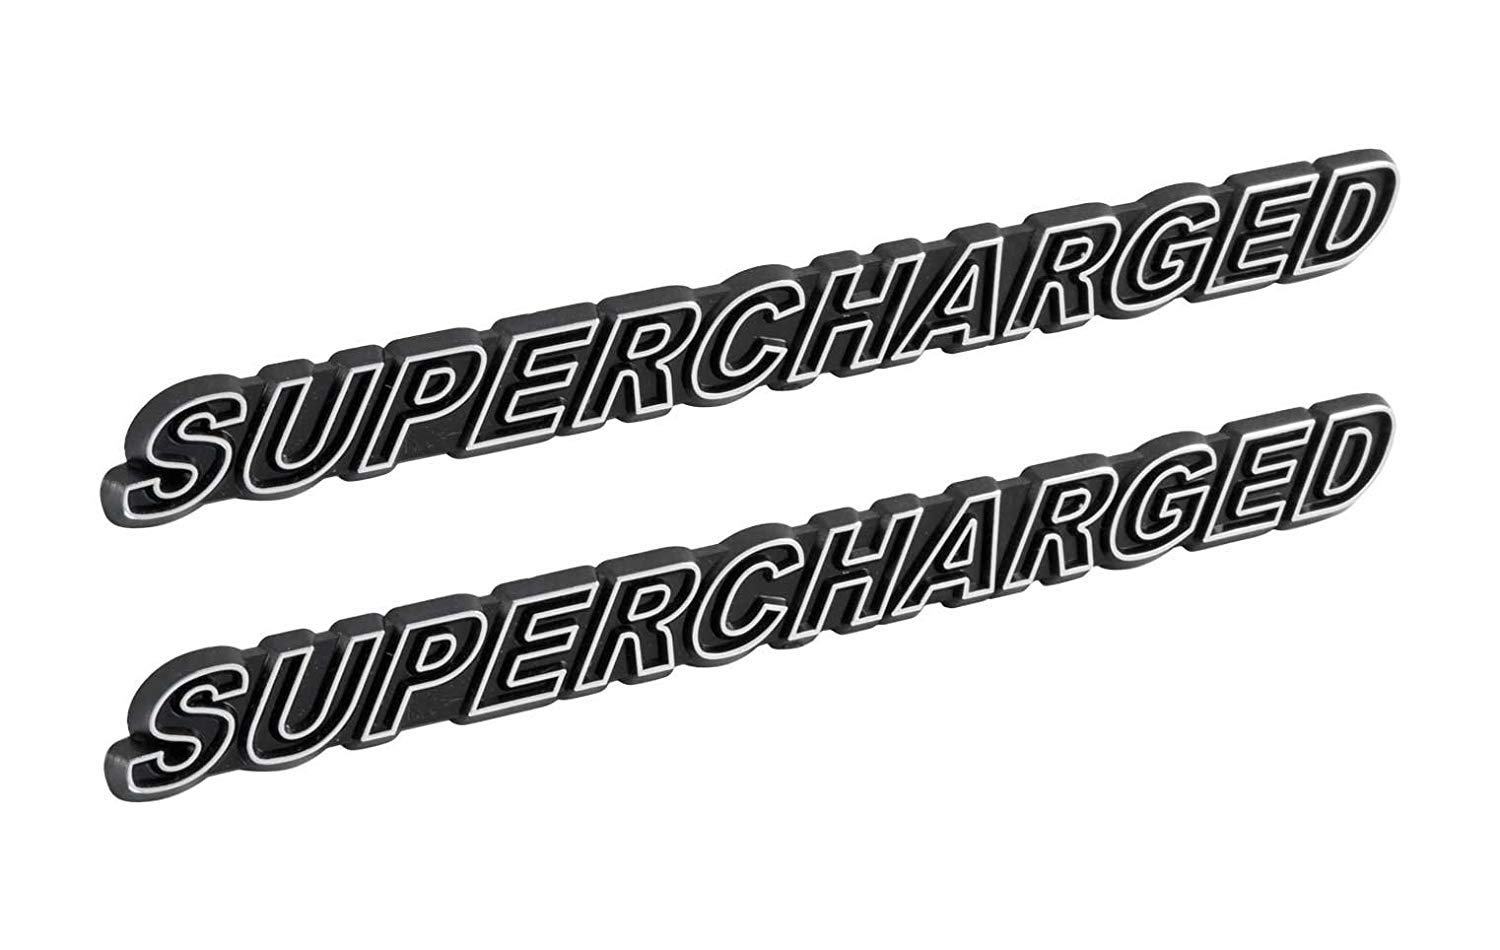 SUPERCHARGED Supercharger Engine Emblems in Chrome /& Black Trim 5.5 Long Pair